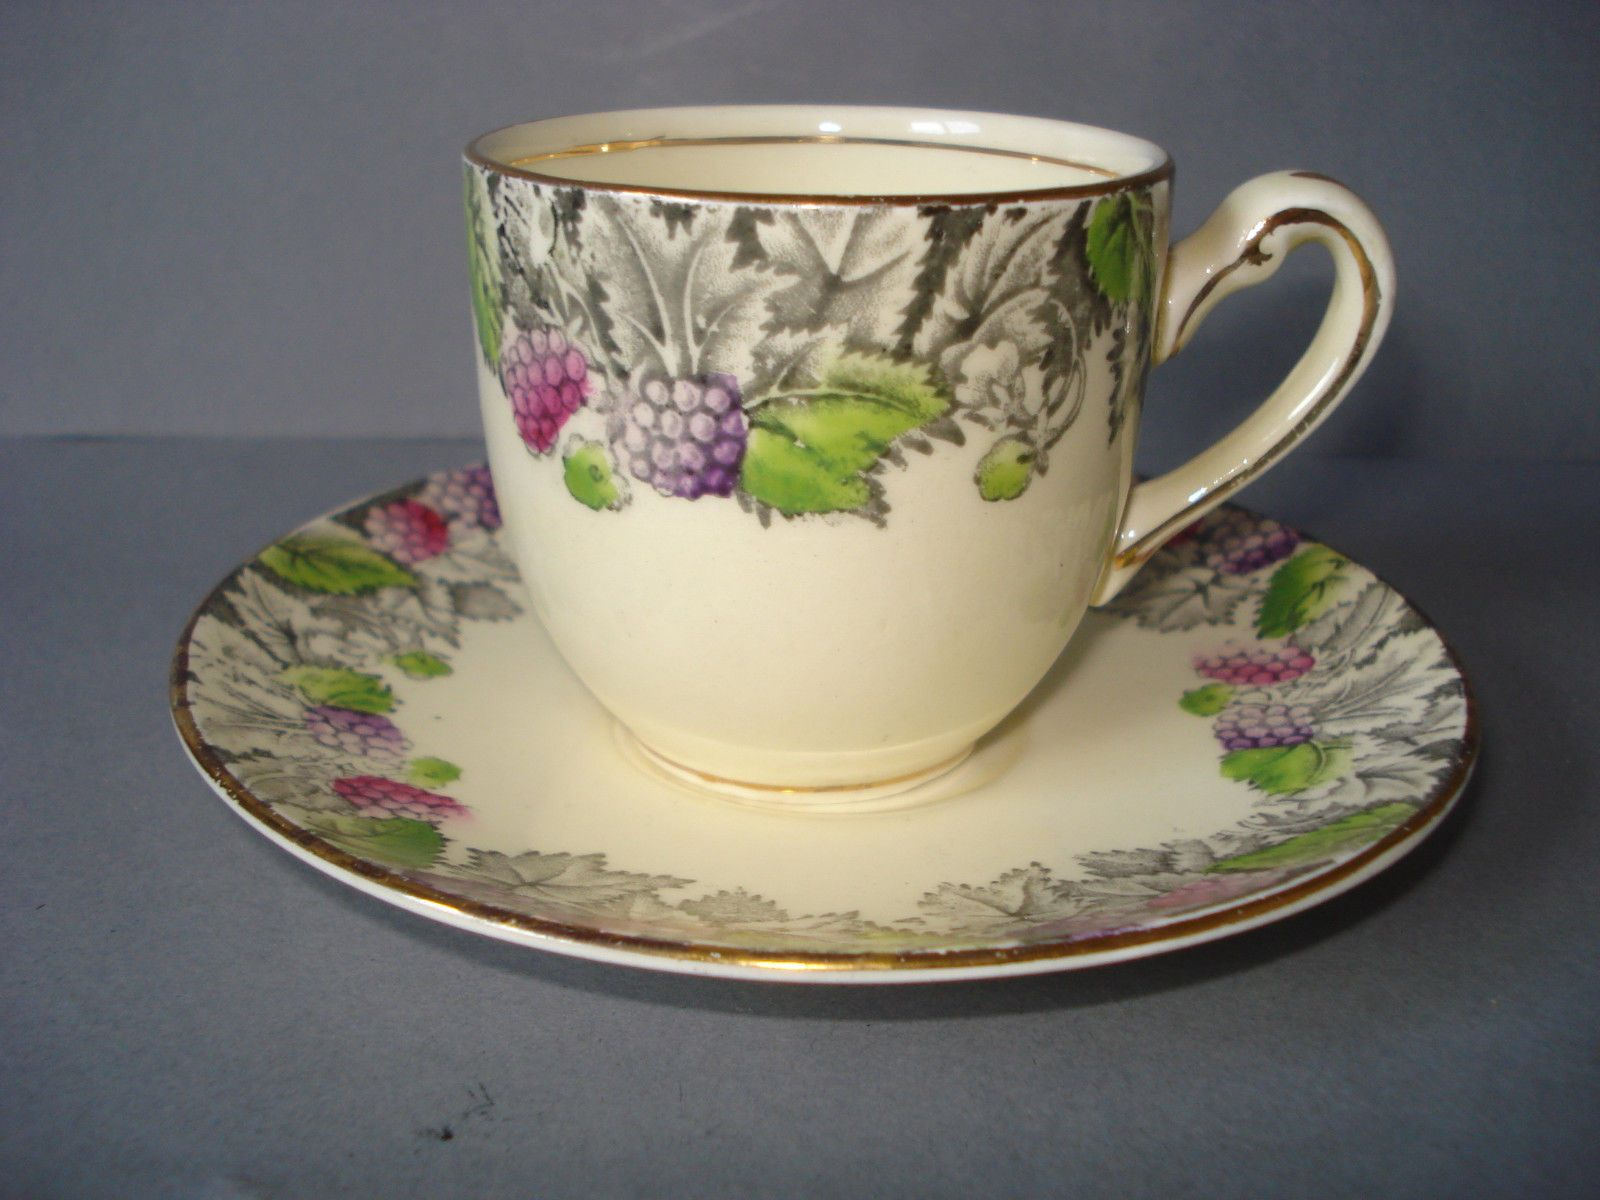 4x Marigold tableware plastic cup//saucer//side plate tea set Made in UK